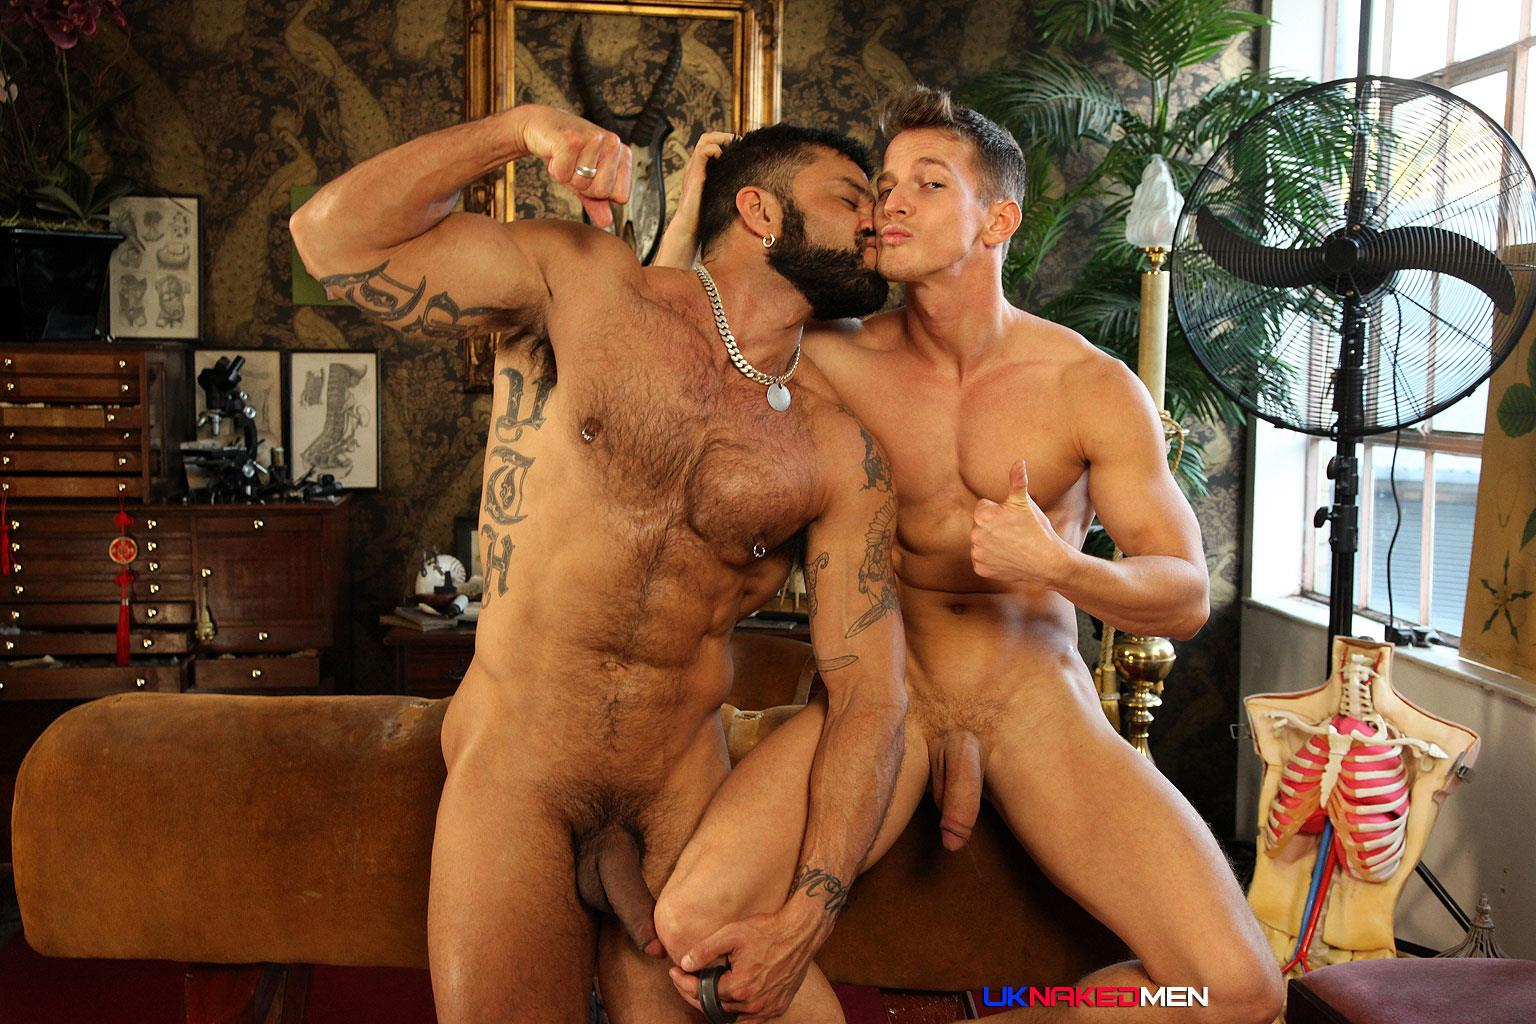 UK Naked Men Rogan Richards Darius Ferdynand Huge Uncut Cocks Fucking Amateur Gay Porn 27 Hairy Muscle Arab Stud With A Big Uncut Cock Fucks A Slim Muscle Ass